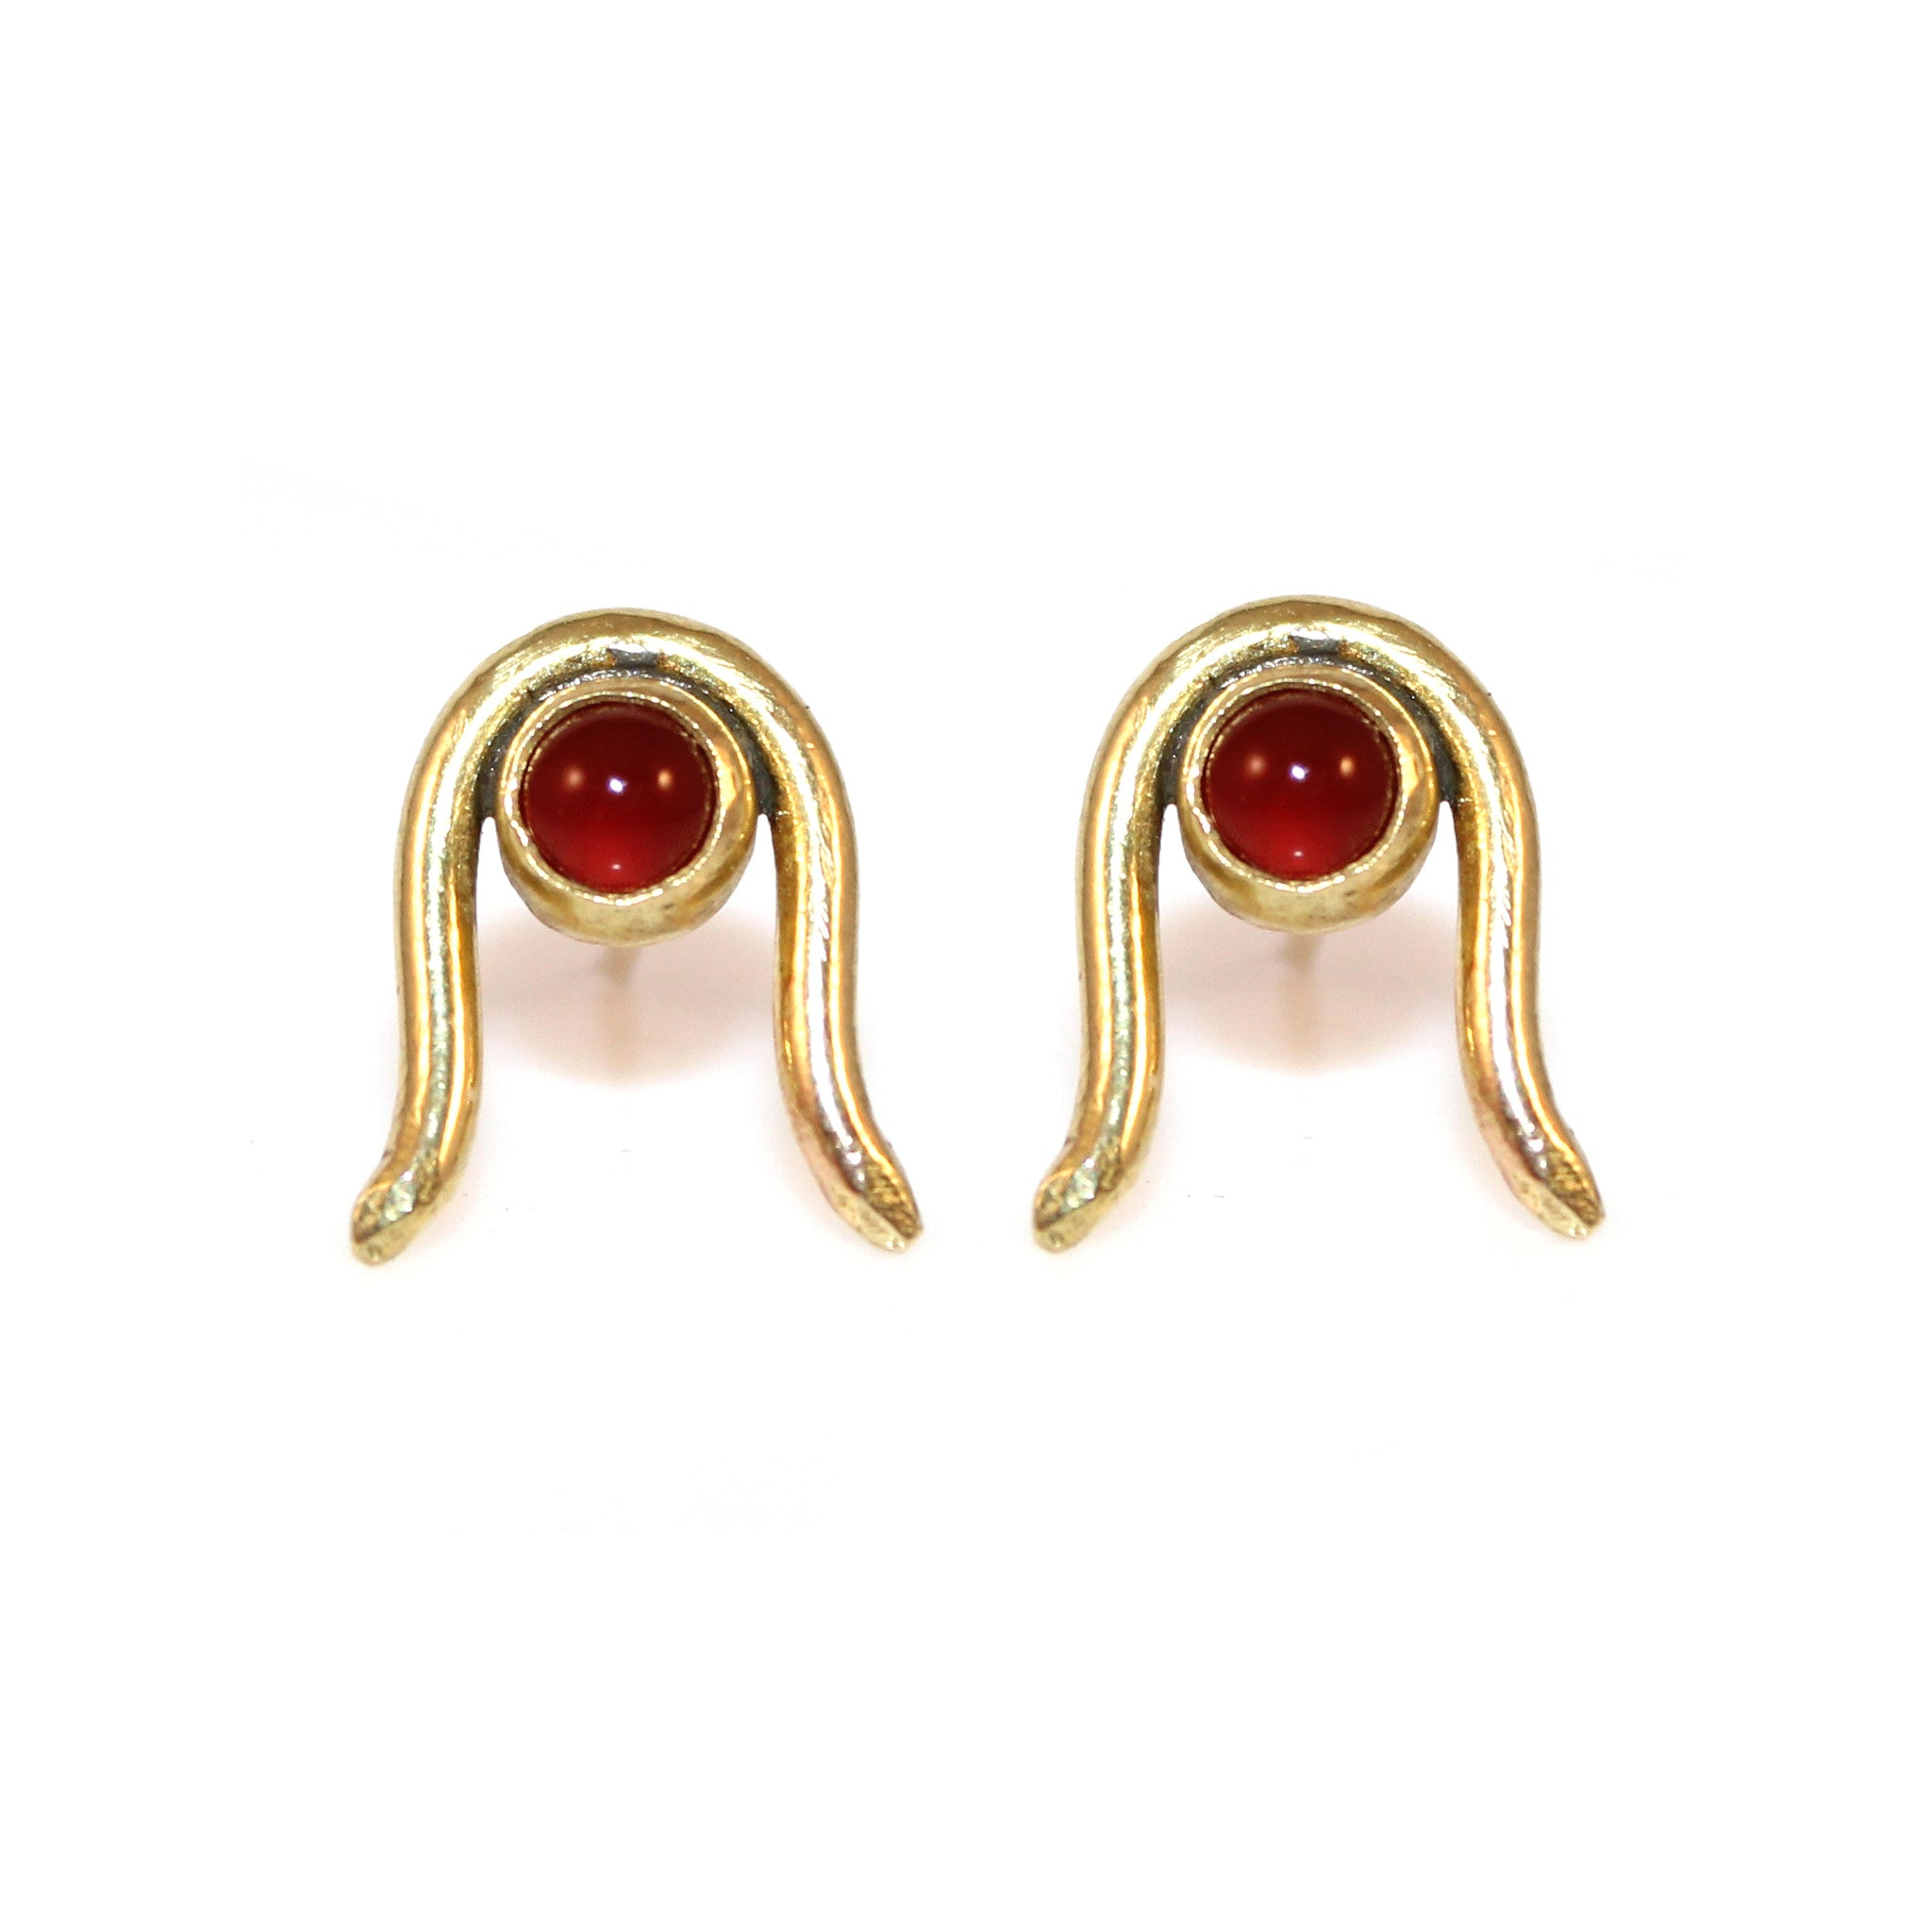 Horus Earrings